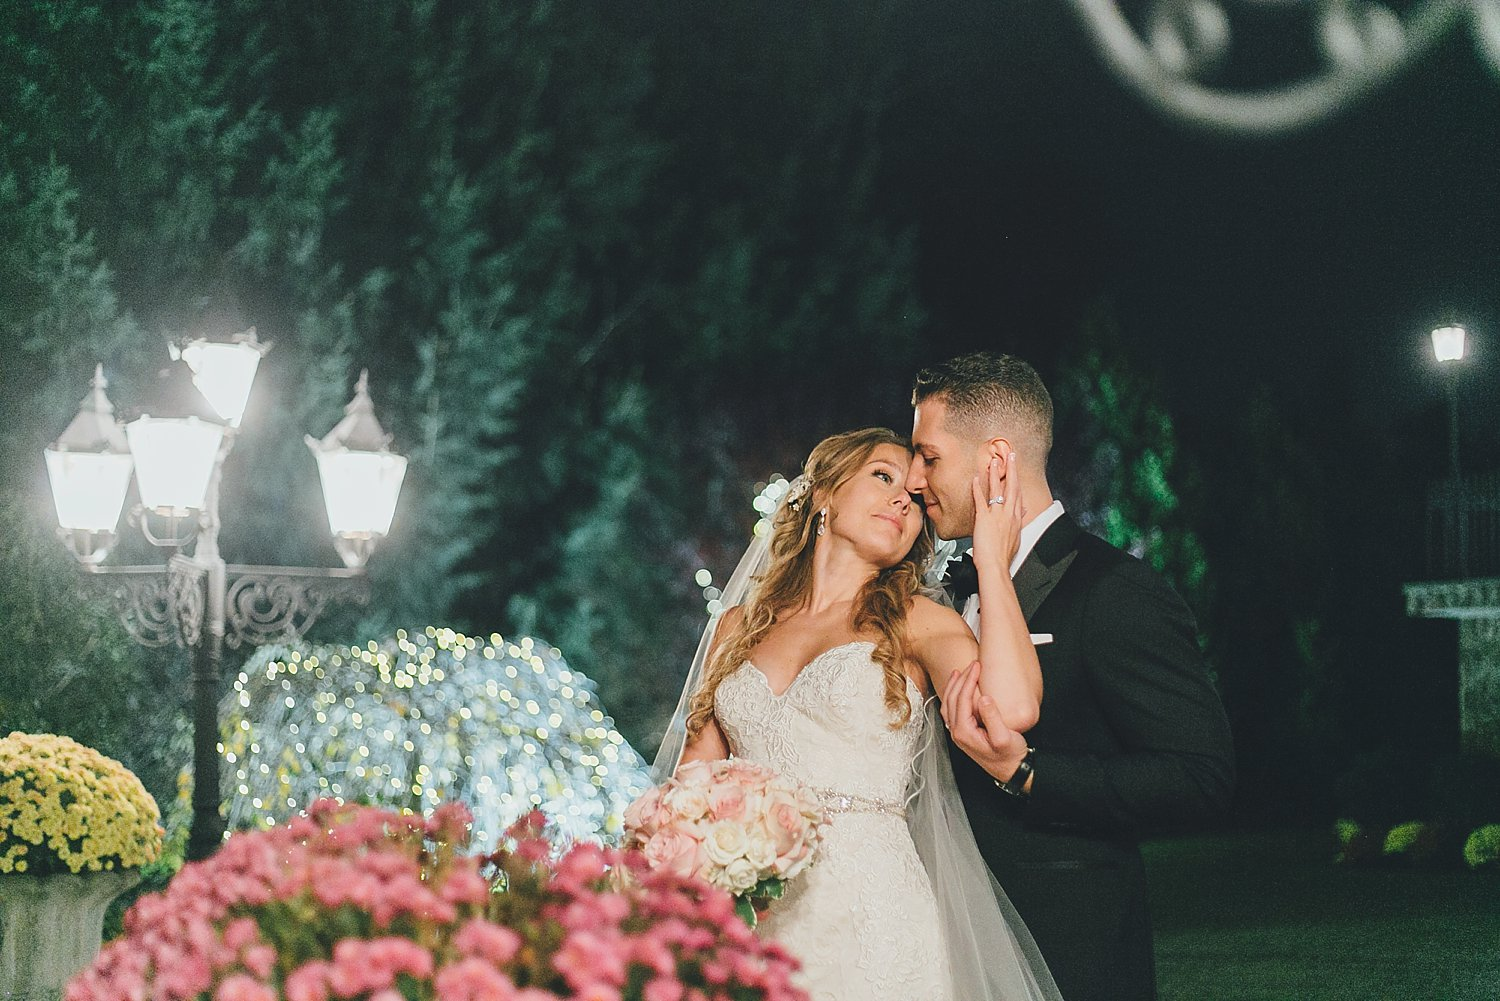 nyc-wedding-photography-nj-tri-state-cinematography-intothestory-by-moo-jae_0284.jpg